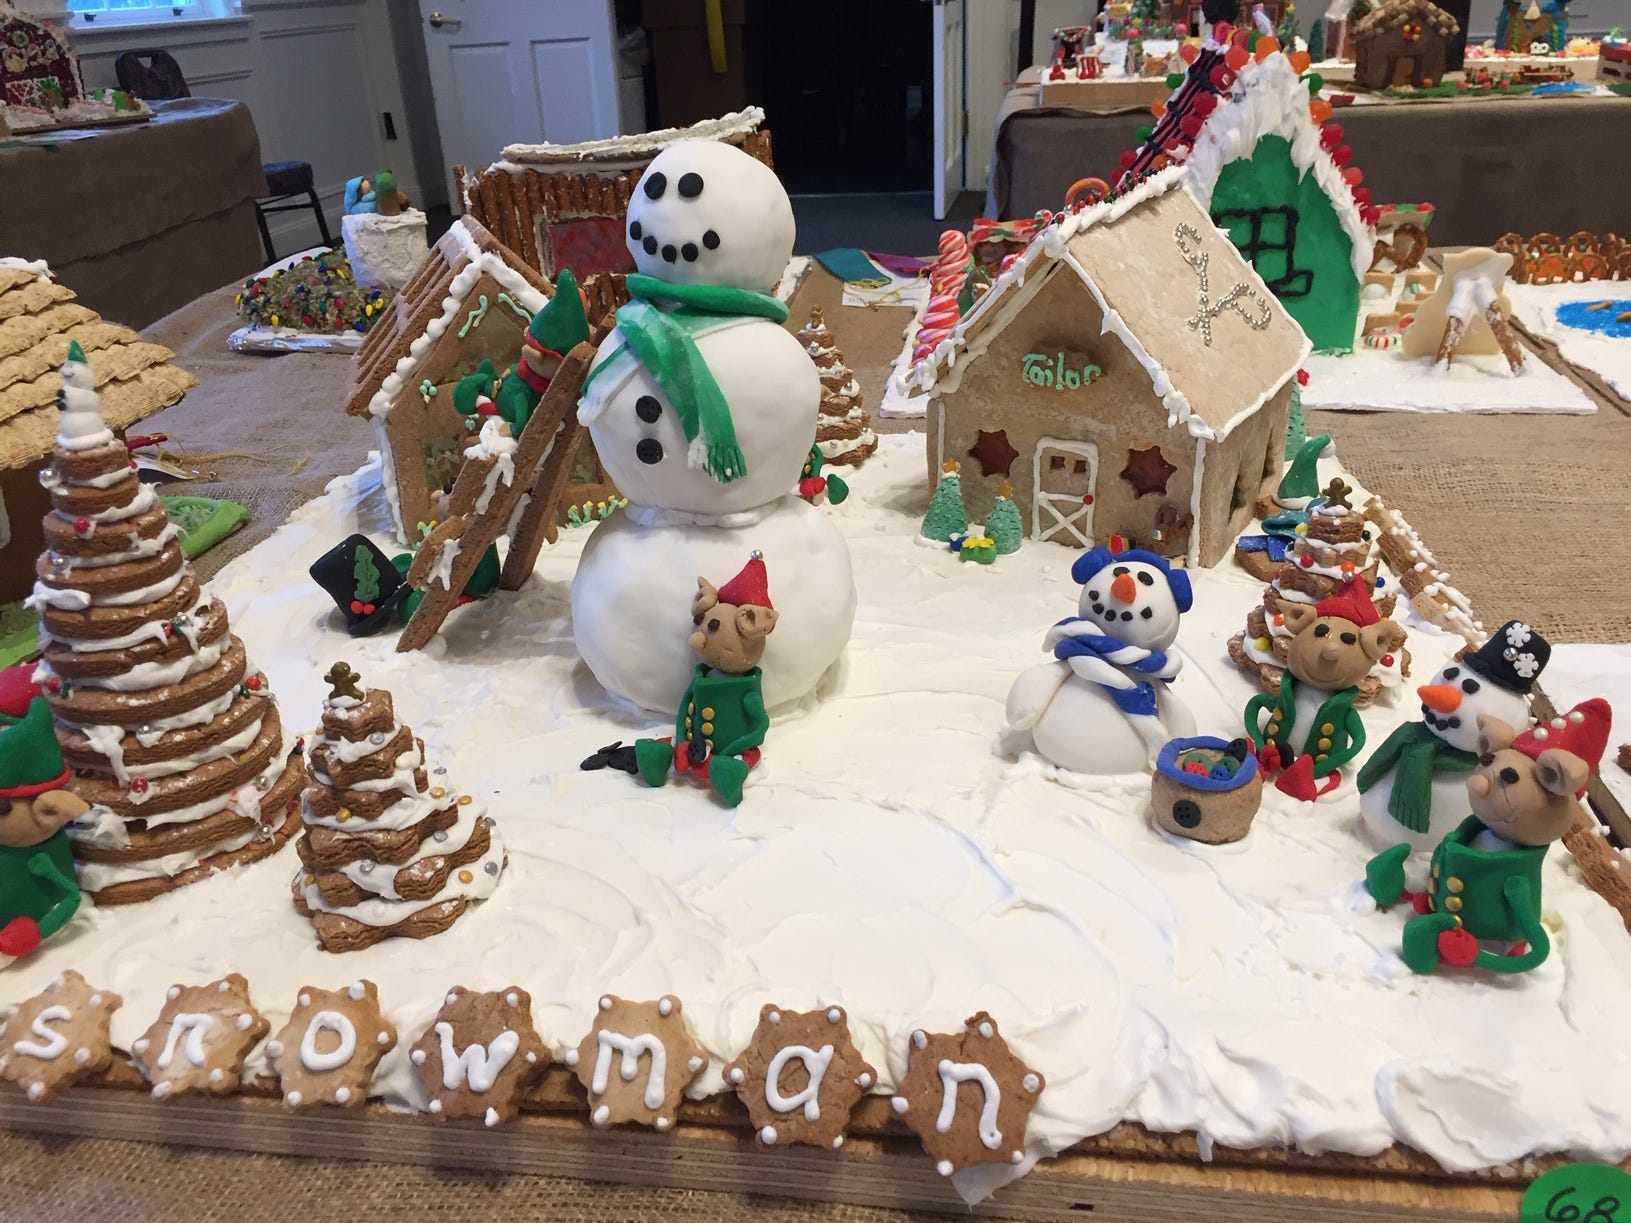 """Snowman Workshop"" by the McNallys of Morris Plains at the 2018 Gingerbread Wonderland at the Frelinghuysen Arboretum. Family category."